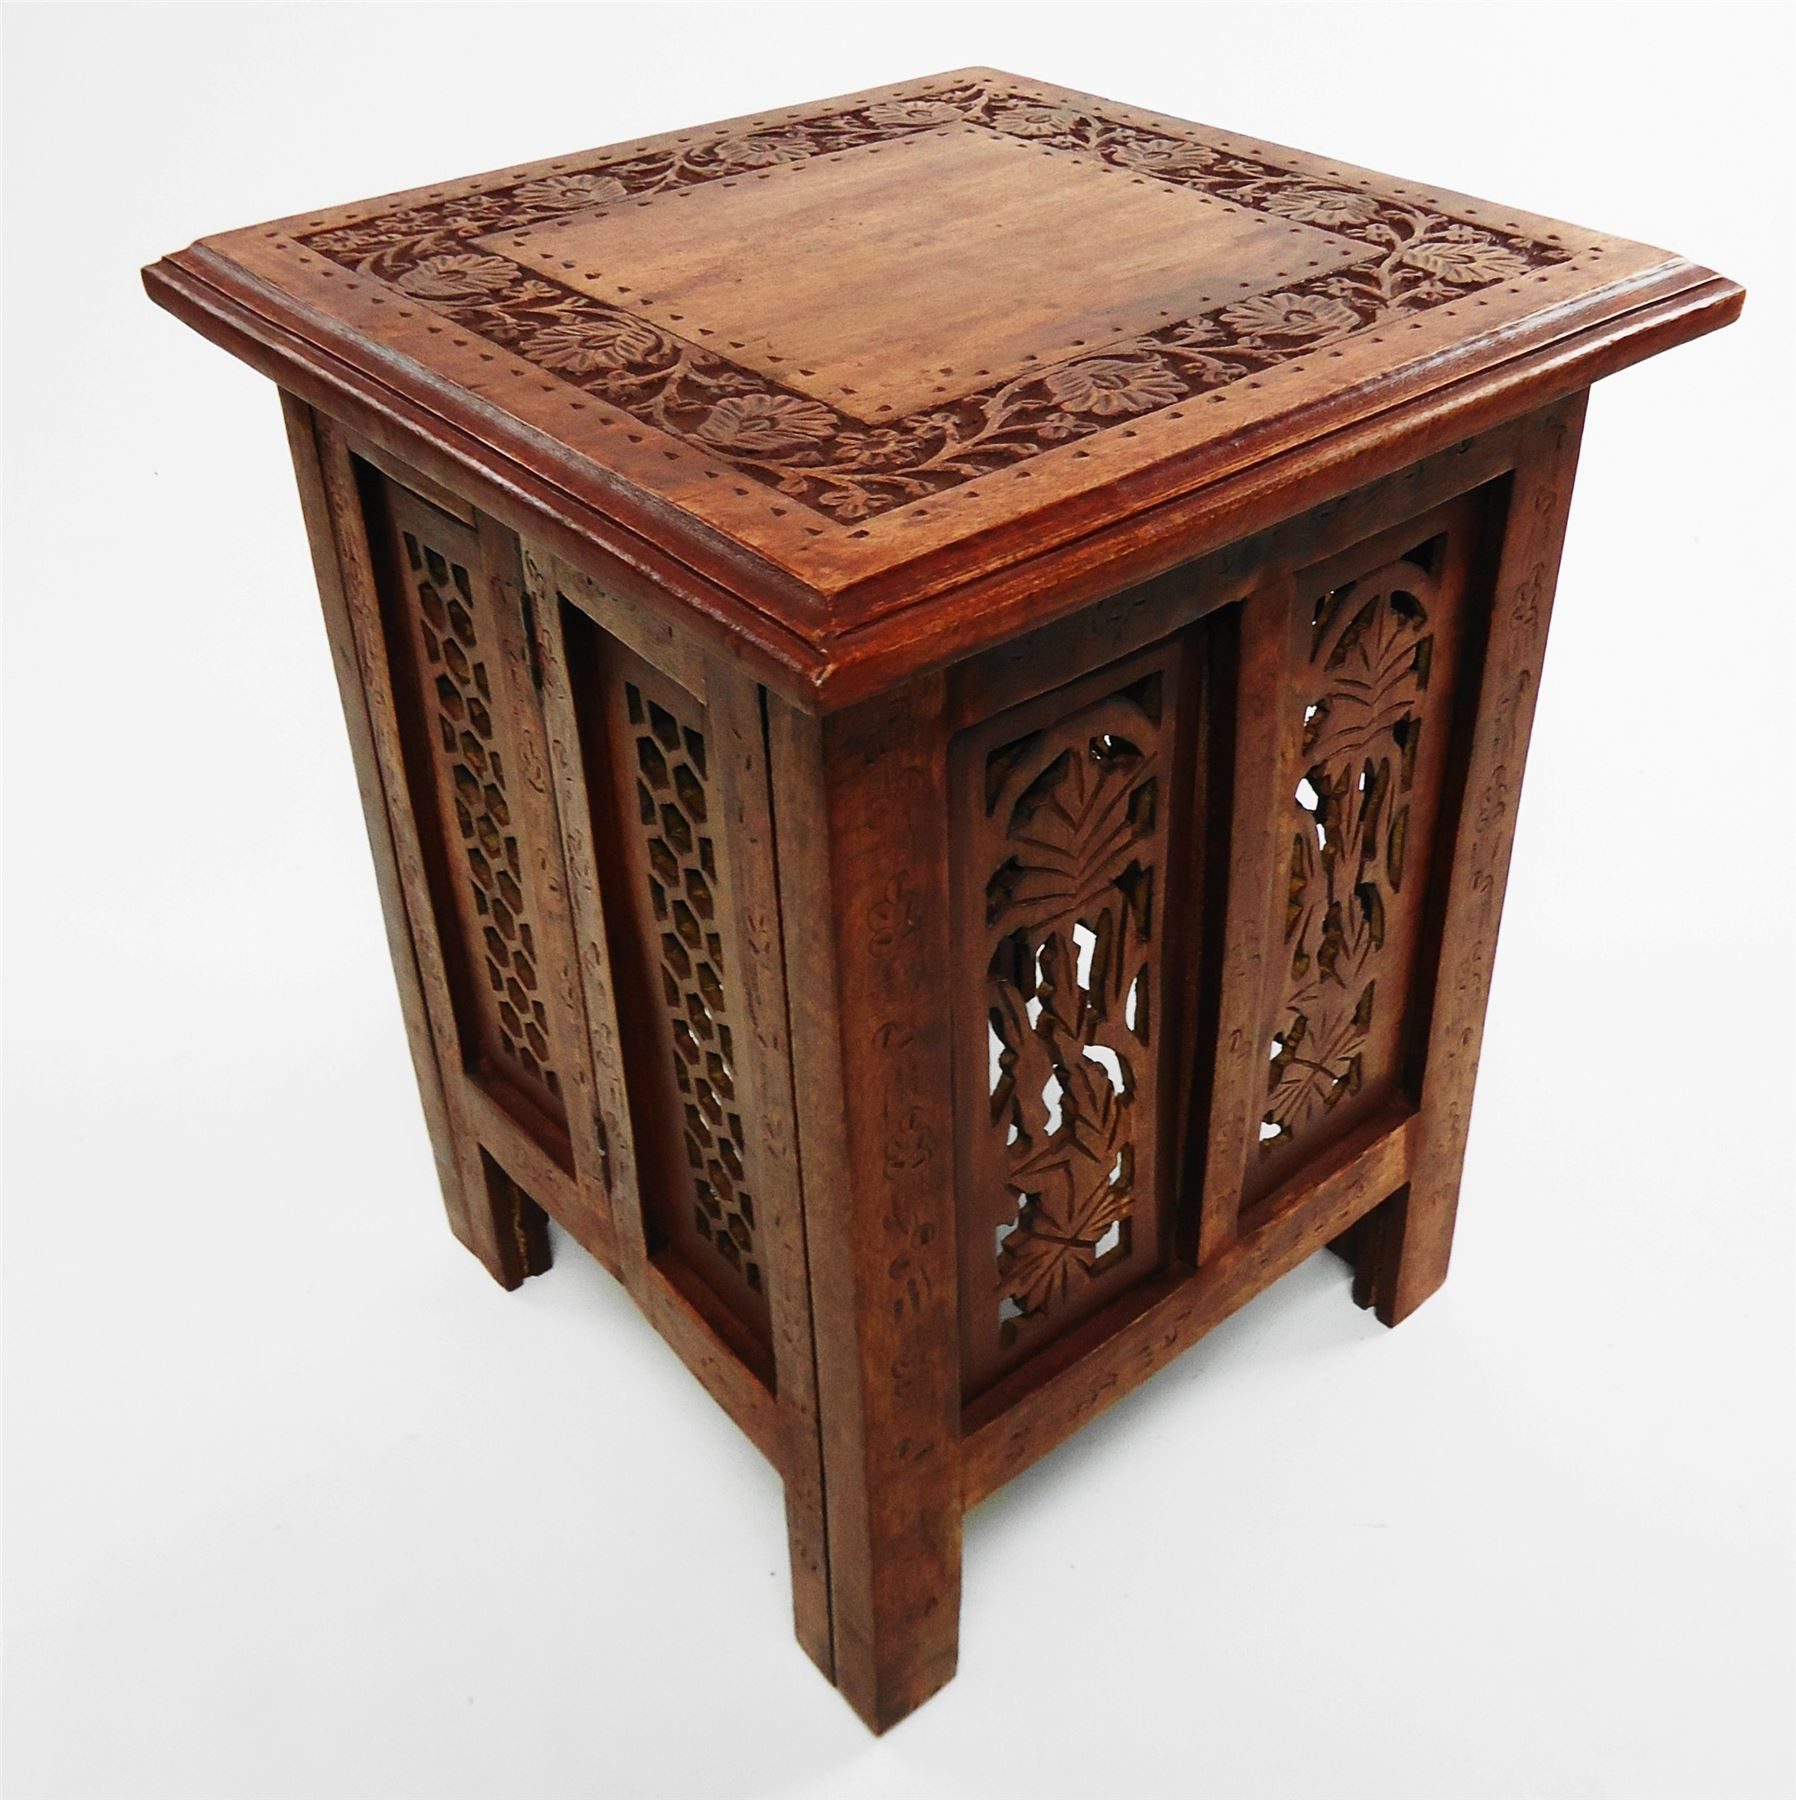 Beautiful antique effect hand carved indian wooden table